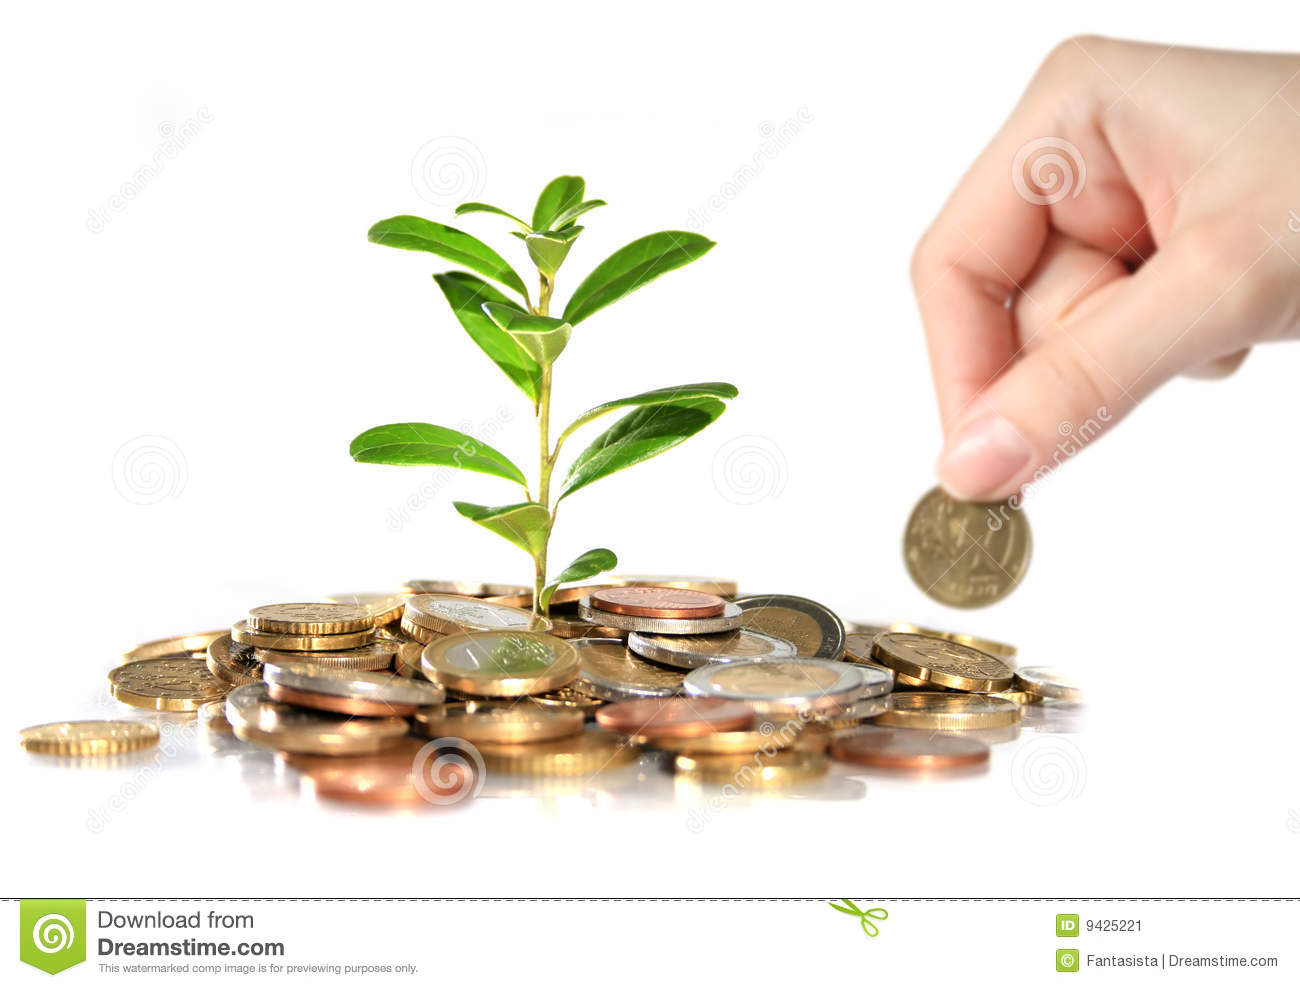 Money and plant.